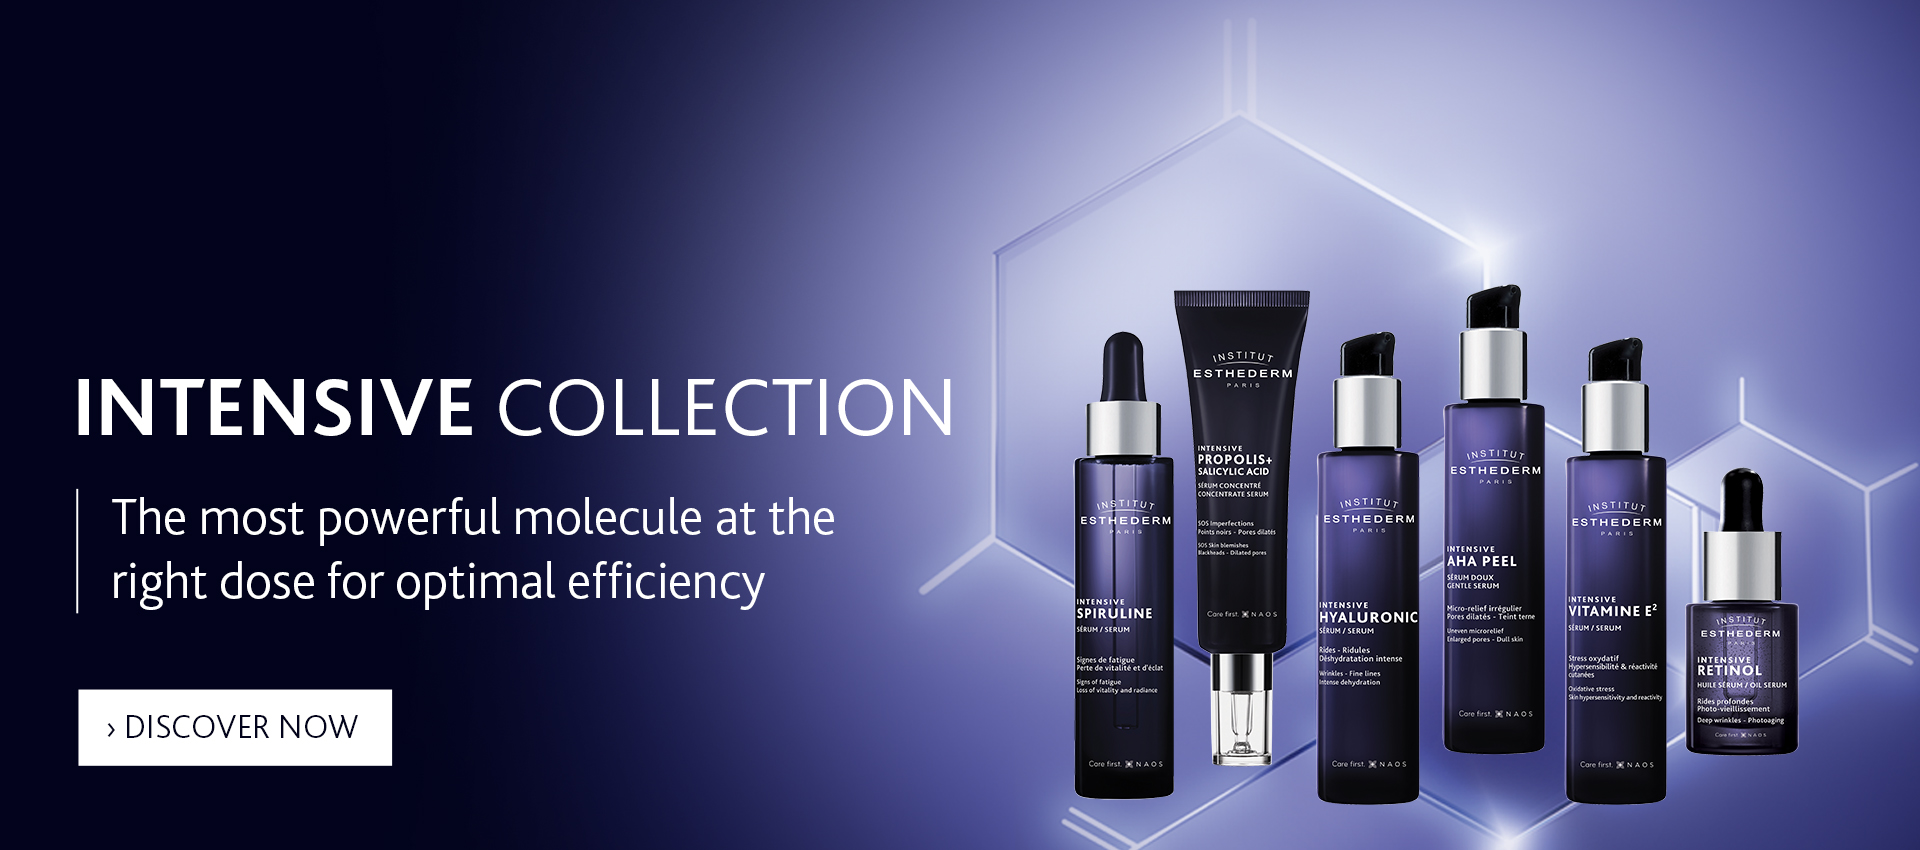 Institut Esthederm Intensive collection